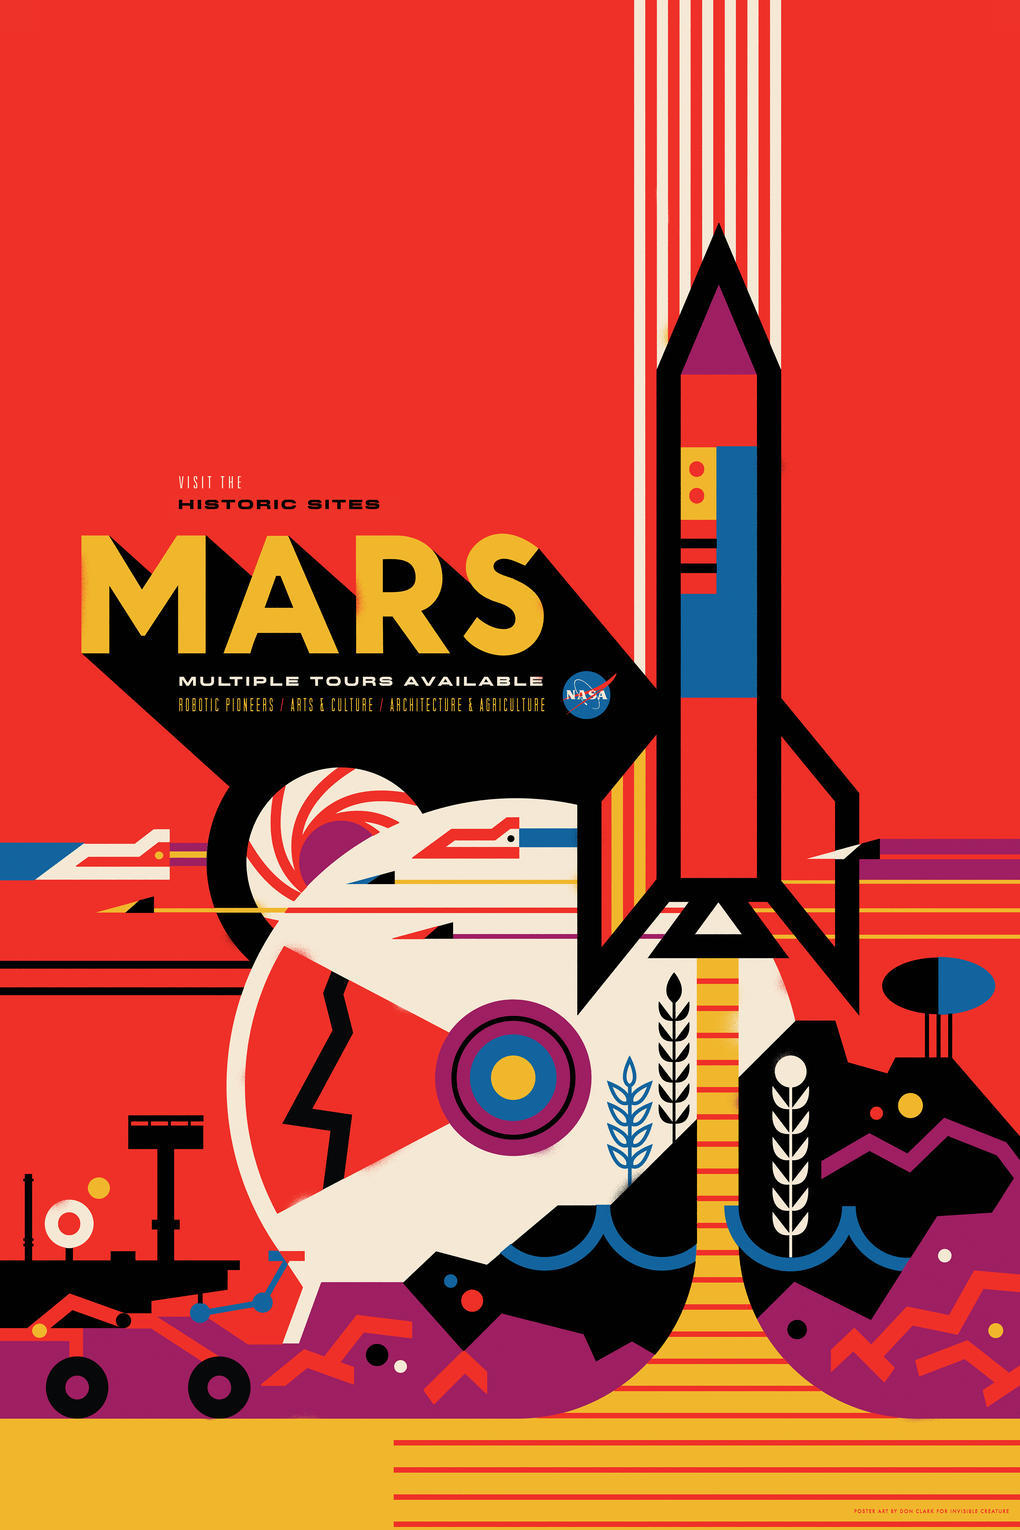 Mars clipart space travel State · mettere sapevate dove